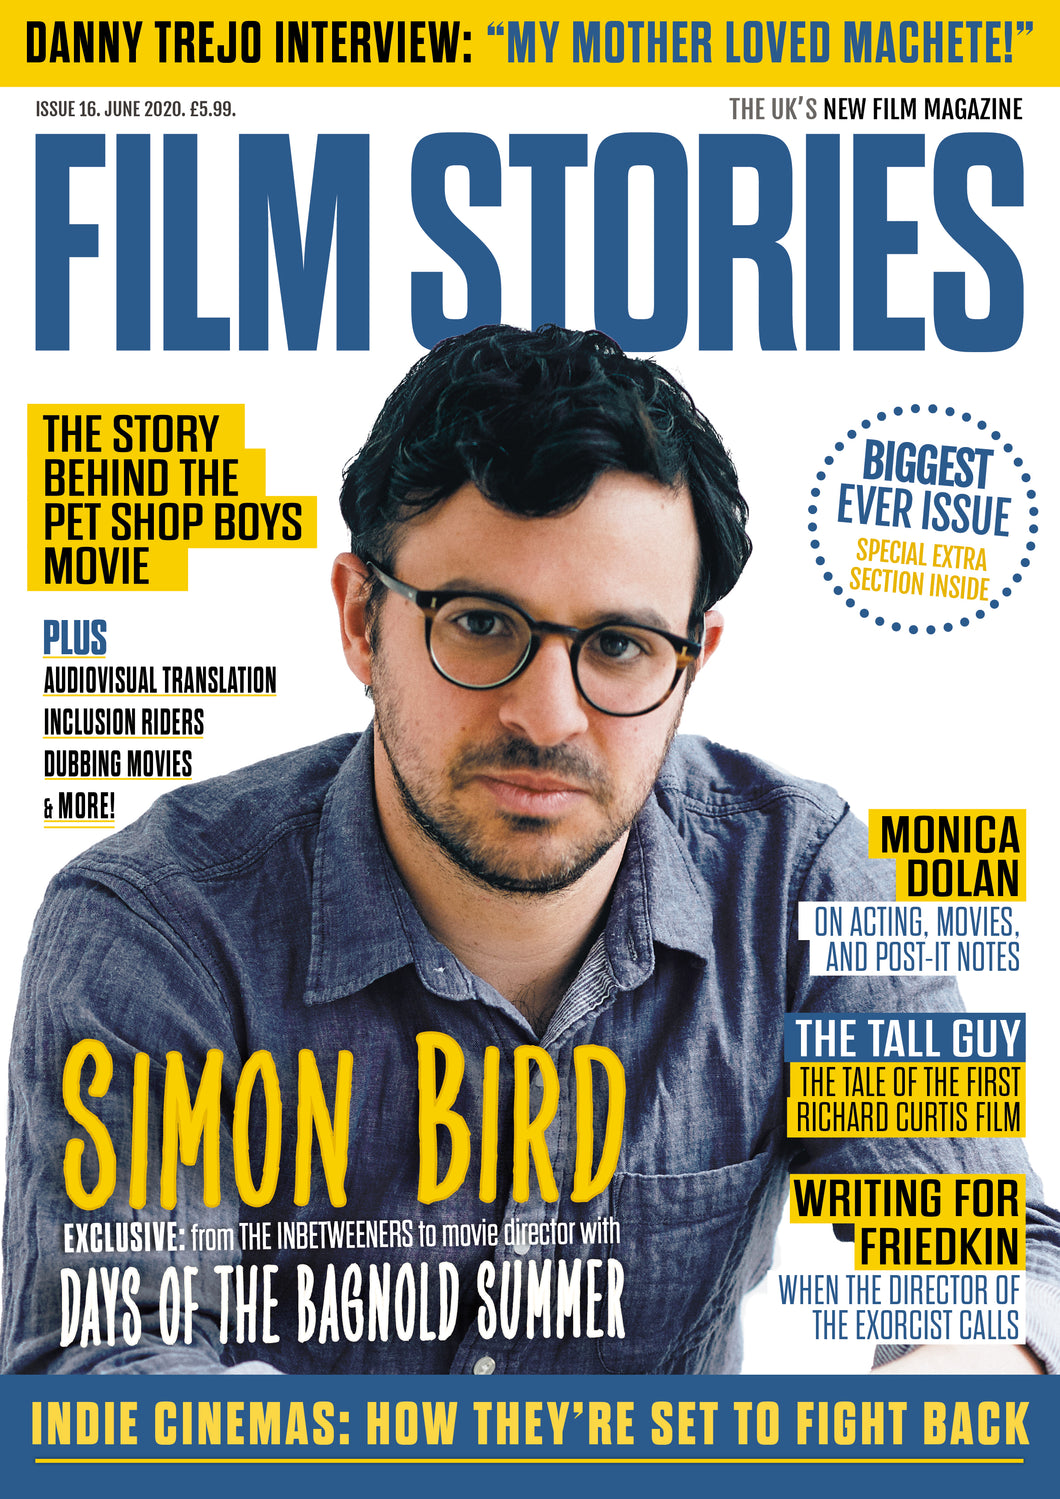 Film Stories issue 16 print edition (June 2020) - preorder